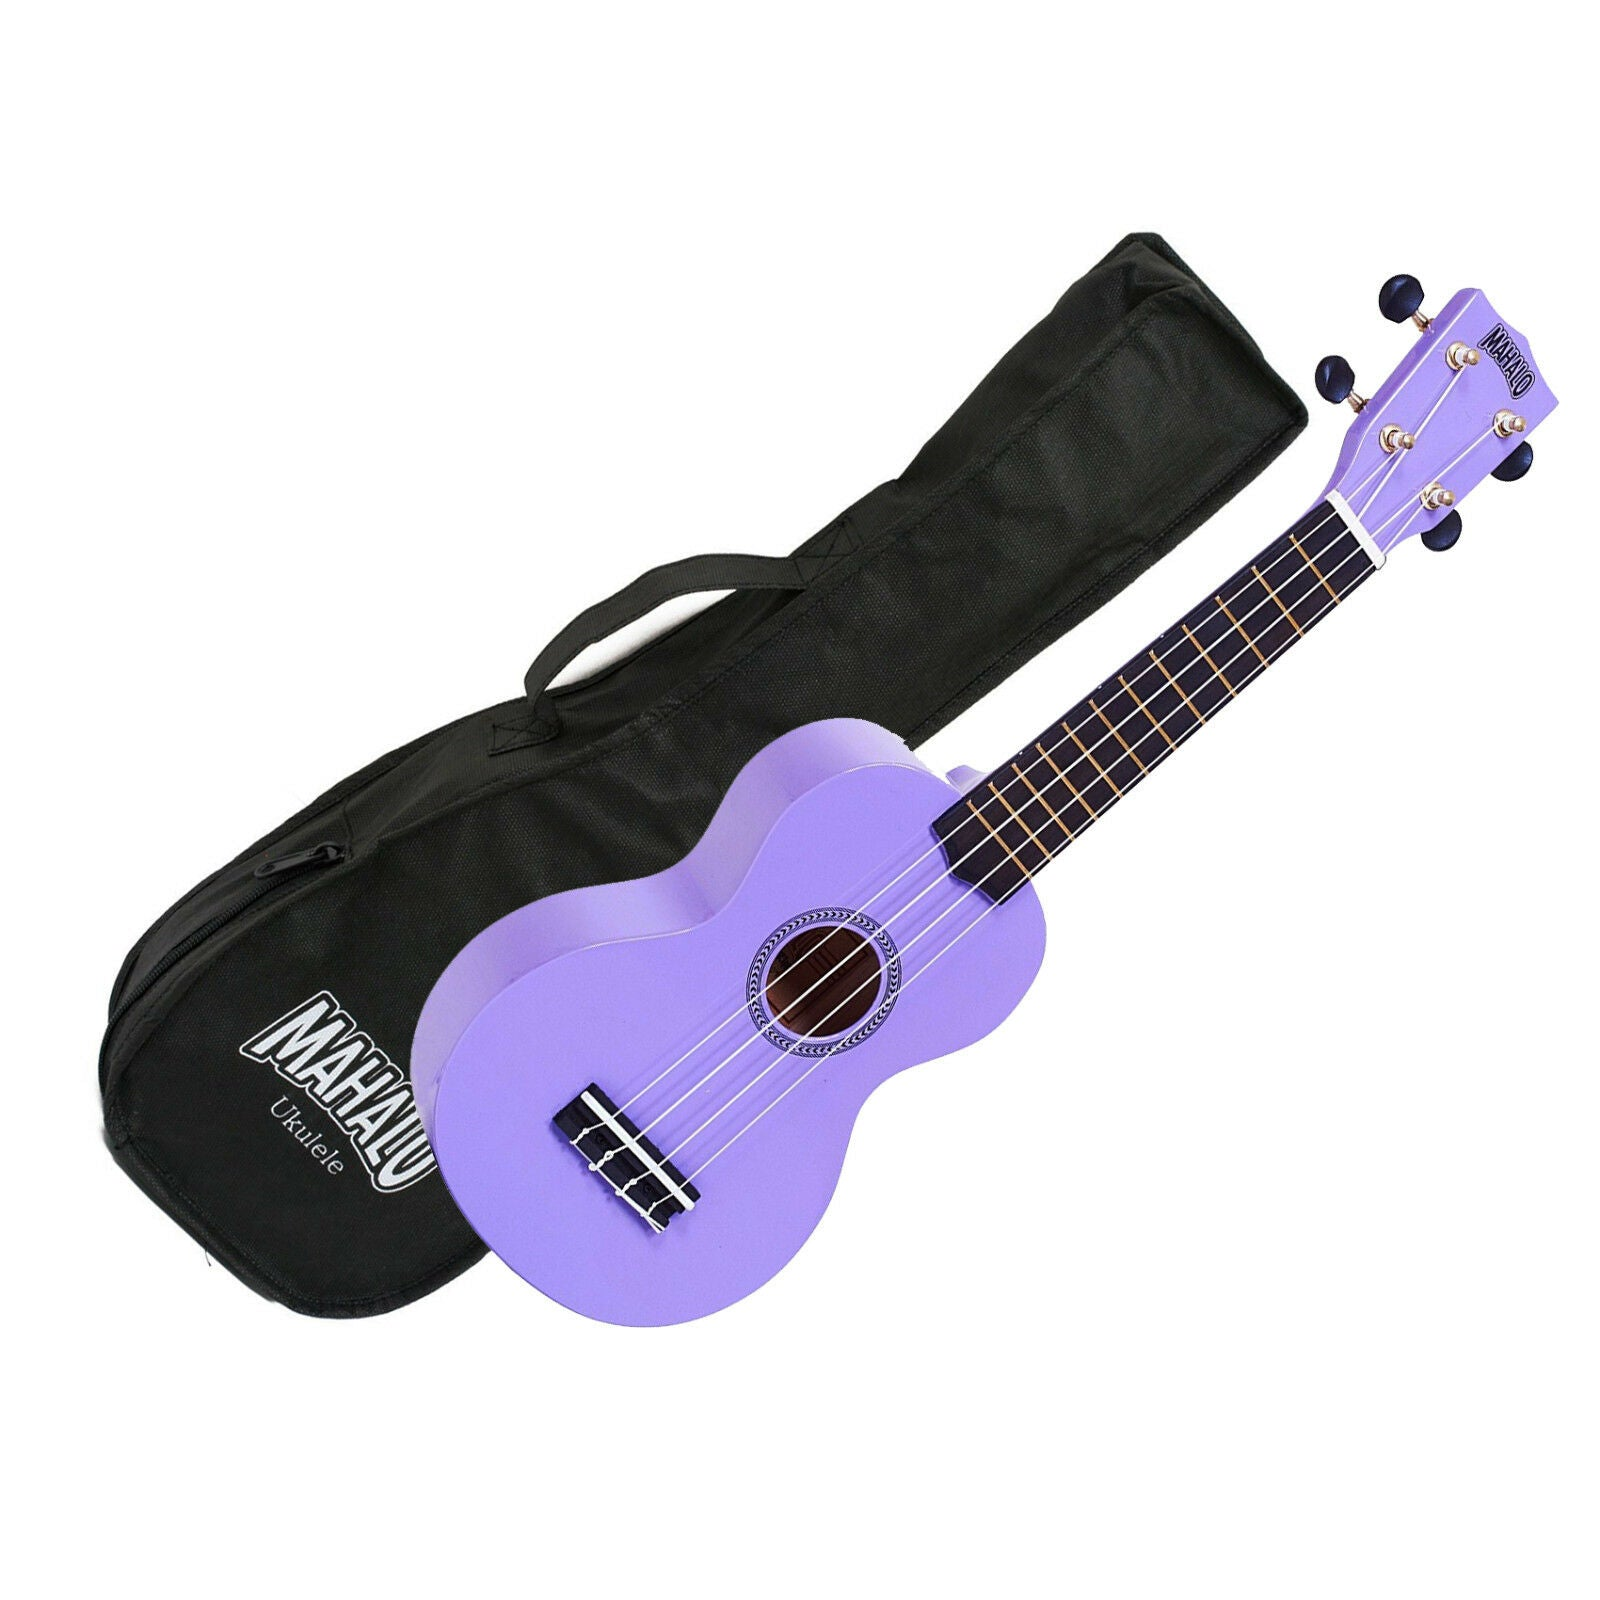 Mahalo MR1-PP Soprano Ukulele w/ Bag - Purple